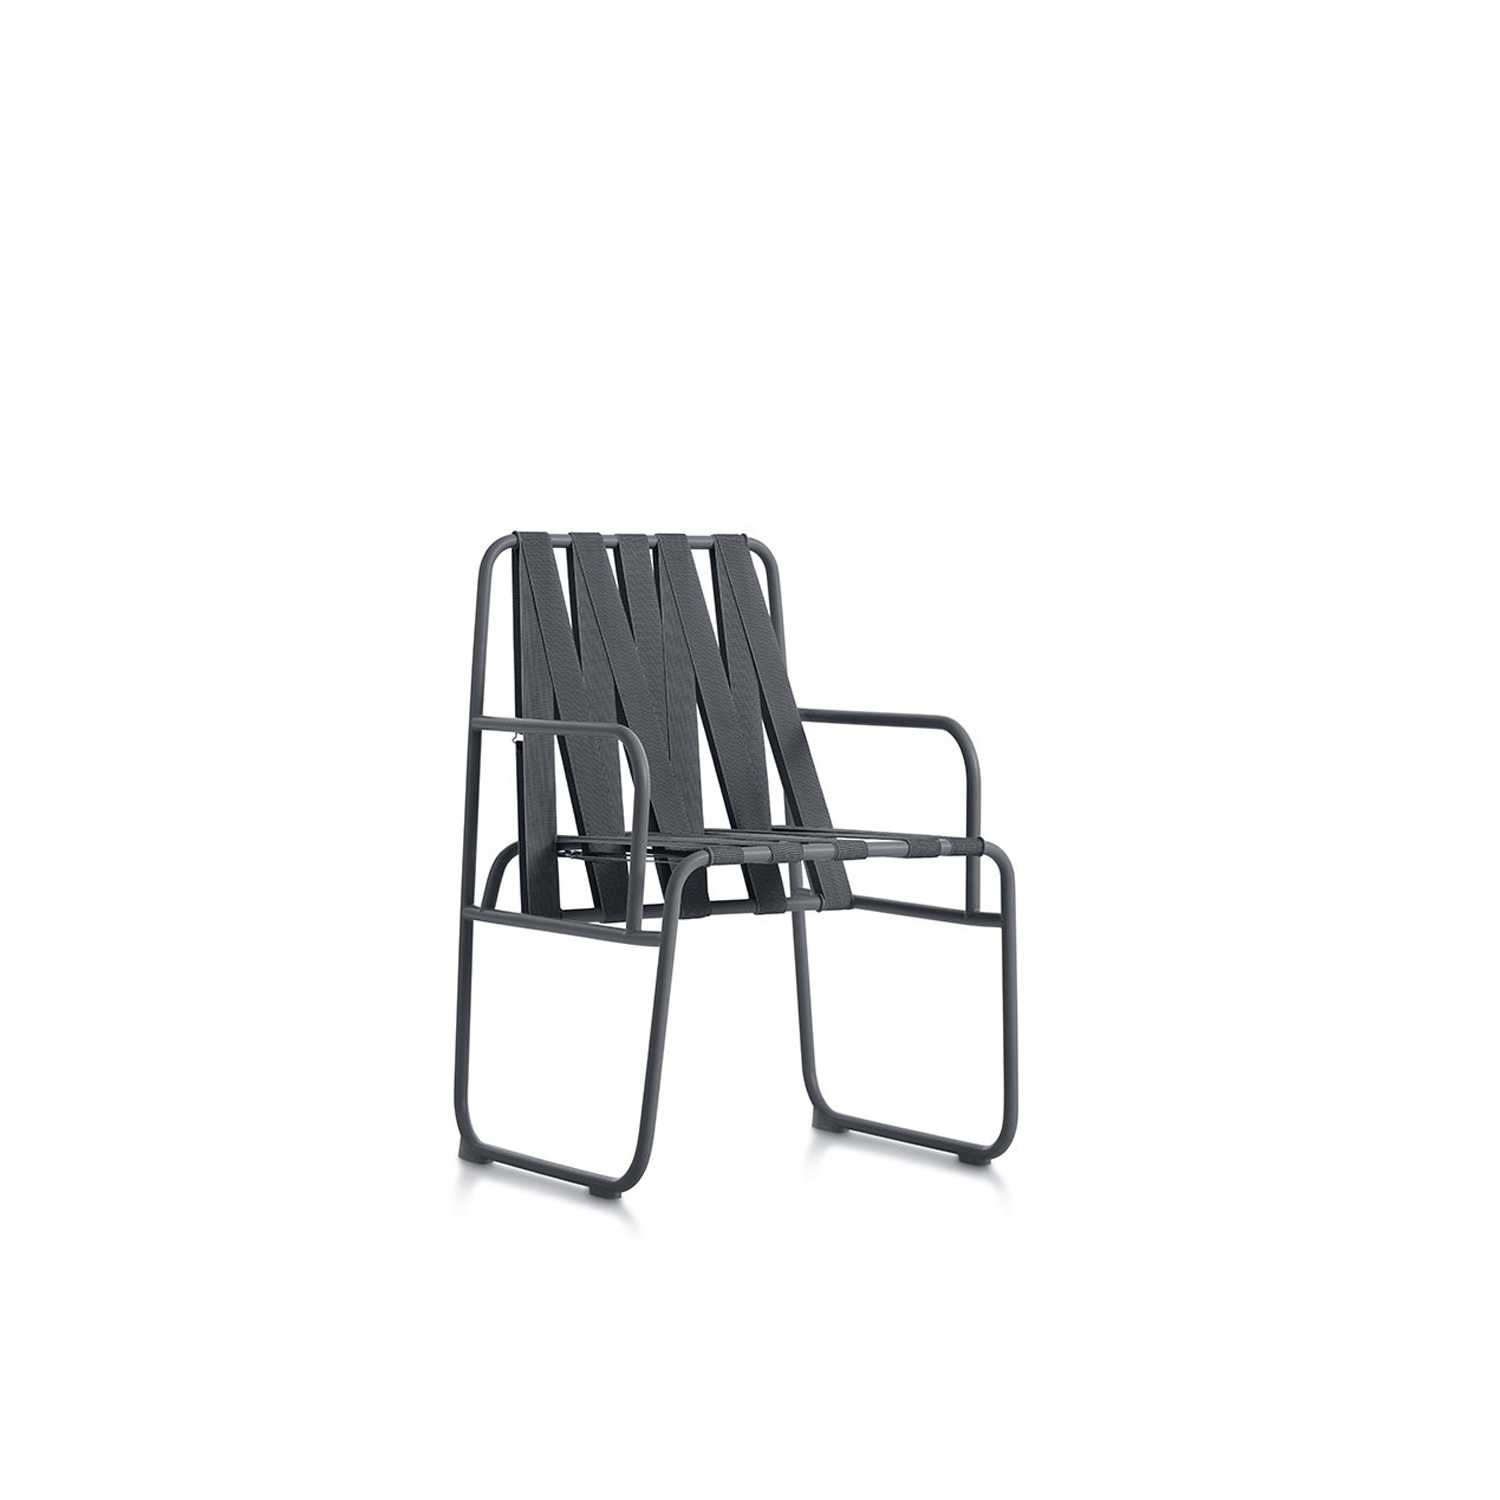 Dozequinze Chair - <p>The Dozequinze collection is one of those designs where the maximum has been achieved with the minimum. Based on simple steel tube structures and rubber lattice work, this is your outdoor seat. Possibly the minimum expression of a chair, a design inspired by observing the dense networks of cables criss-crossing the sky over the city of São Paulo. A chair with a casual look that's perfect for an informal outdoor area.</p> <p>The Dozequinze outdoor chair is particularly comfortable because of the elasticity of the rubber webbing on both the seat and the back, very similar to hand crafted lattice work. The webbing is made from a material that's a mix of polypropylene and synthetic rubber, which is not only ergonomically comfortable but also extremely resistant to being outside in all kinds of weather conditions.</p>  | Matter of Stuff